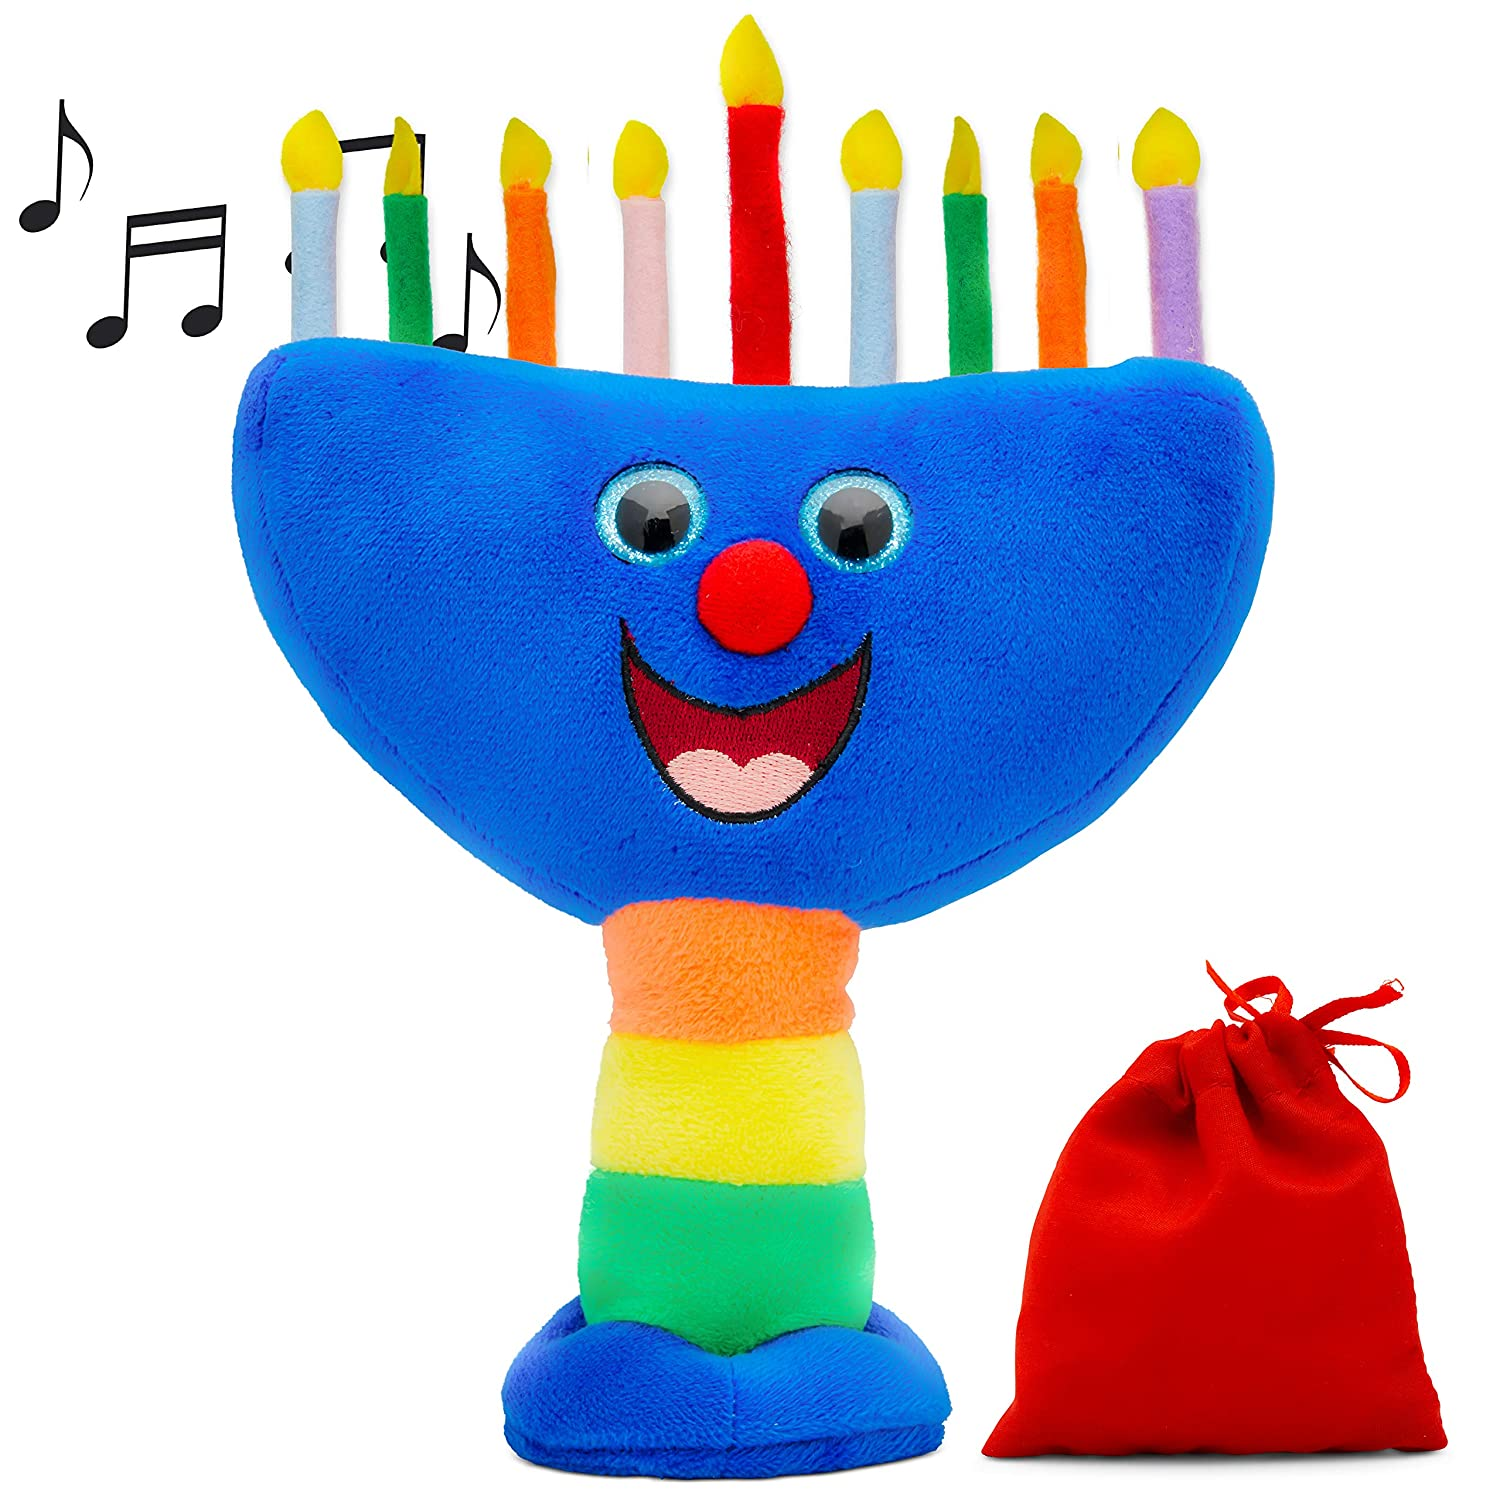 Aviv Judaica Plush Hanukkah Menorah Musical Menorah Plays 2 Classic Hanukkah Melodies Includes Removable Candles Candle Bag